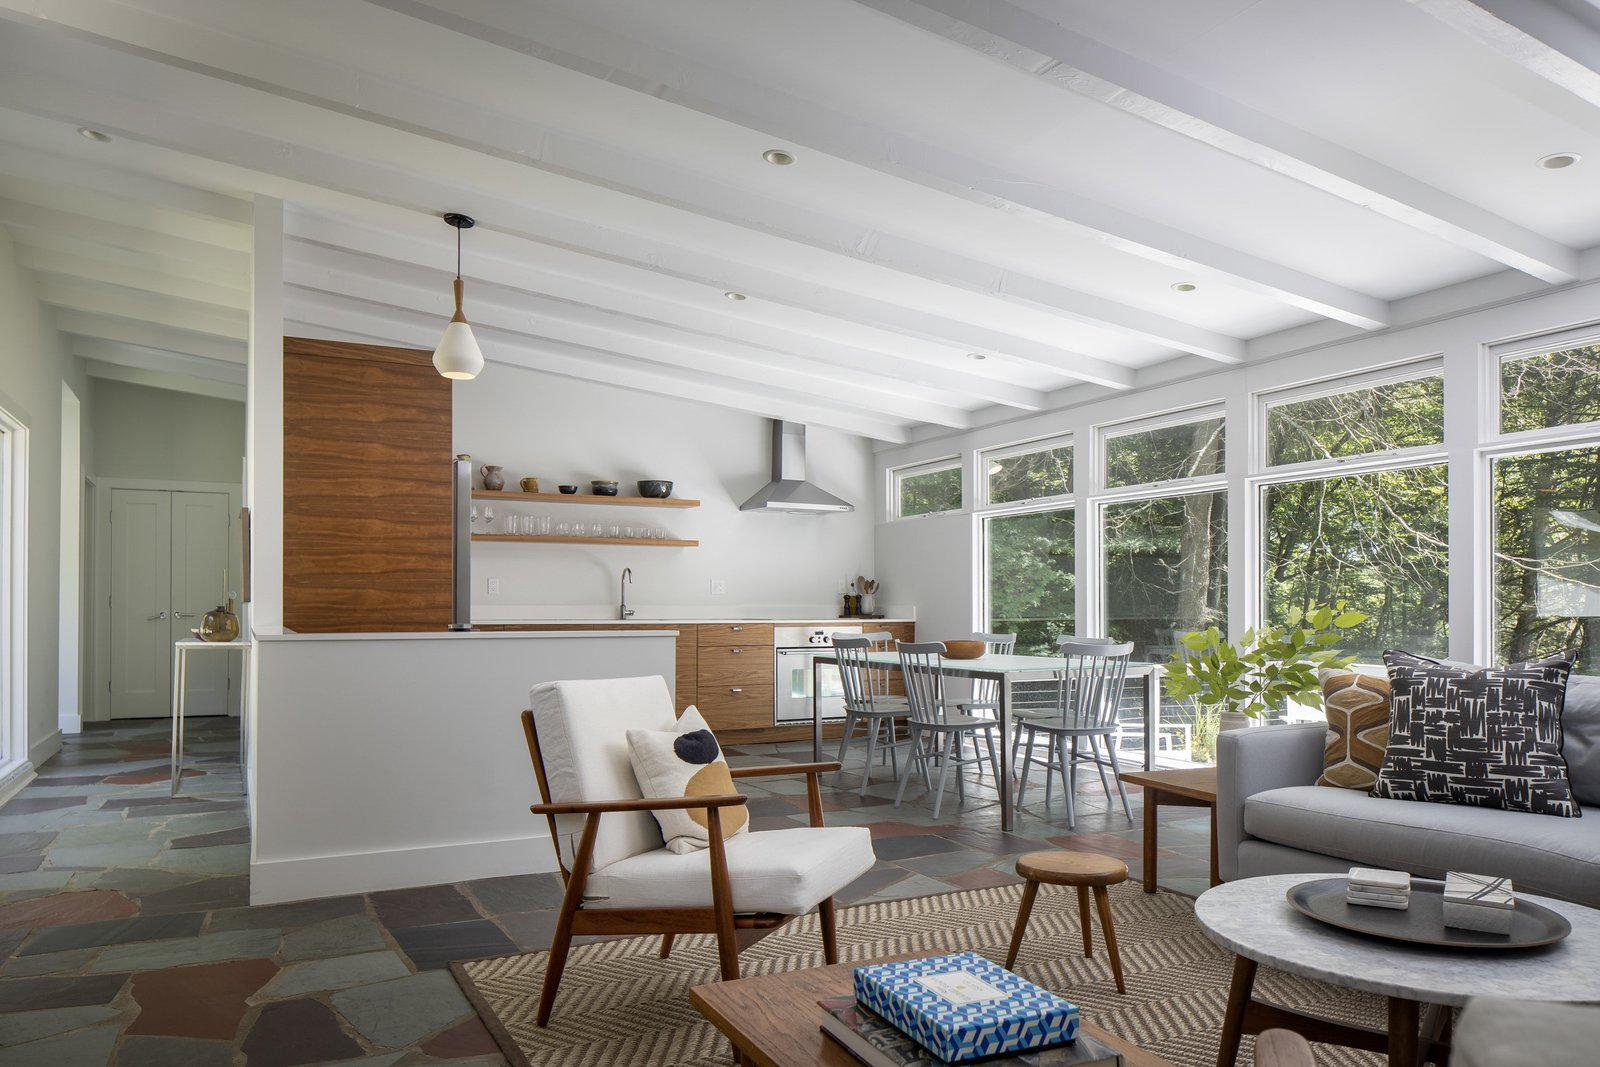 The living room flows directly into the dining area and kitchen. Exposed rafters subtly reinforce the slated roofline and draw the eye toward the wall-to-wall windows.  Photo 4 of 15 in For $1.35M, Snag This Renovated Midcentury Retreat Nestled in a Hardwood Forest